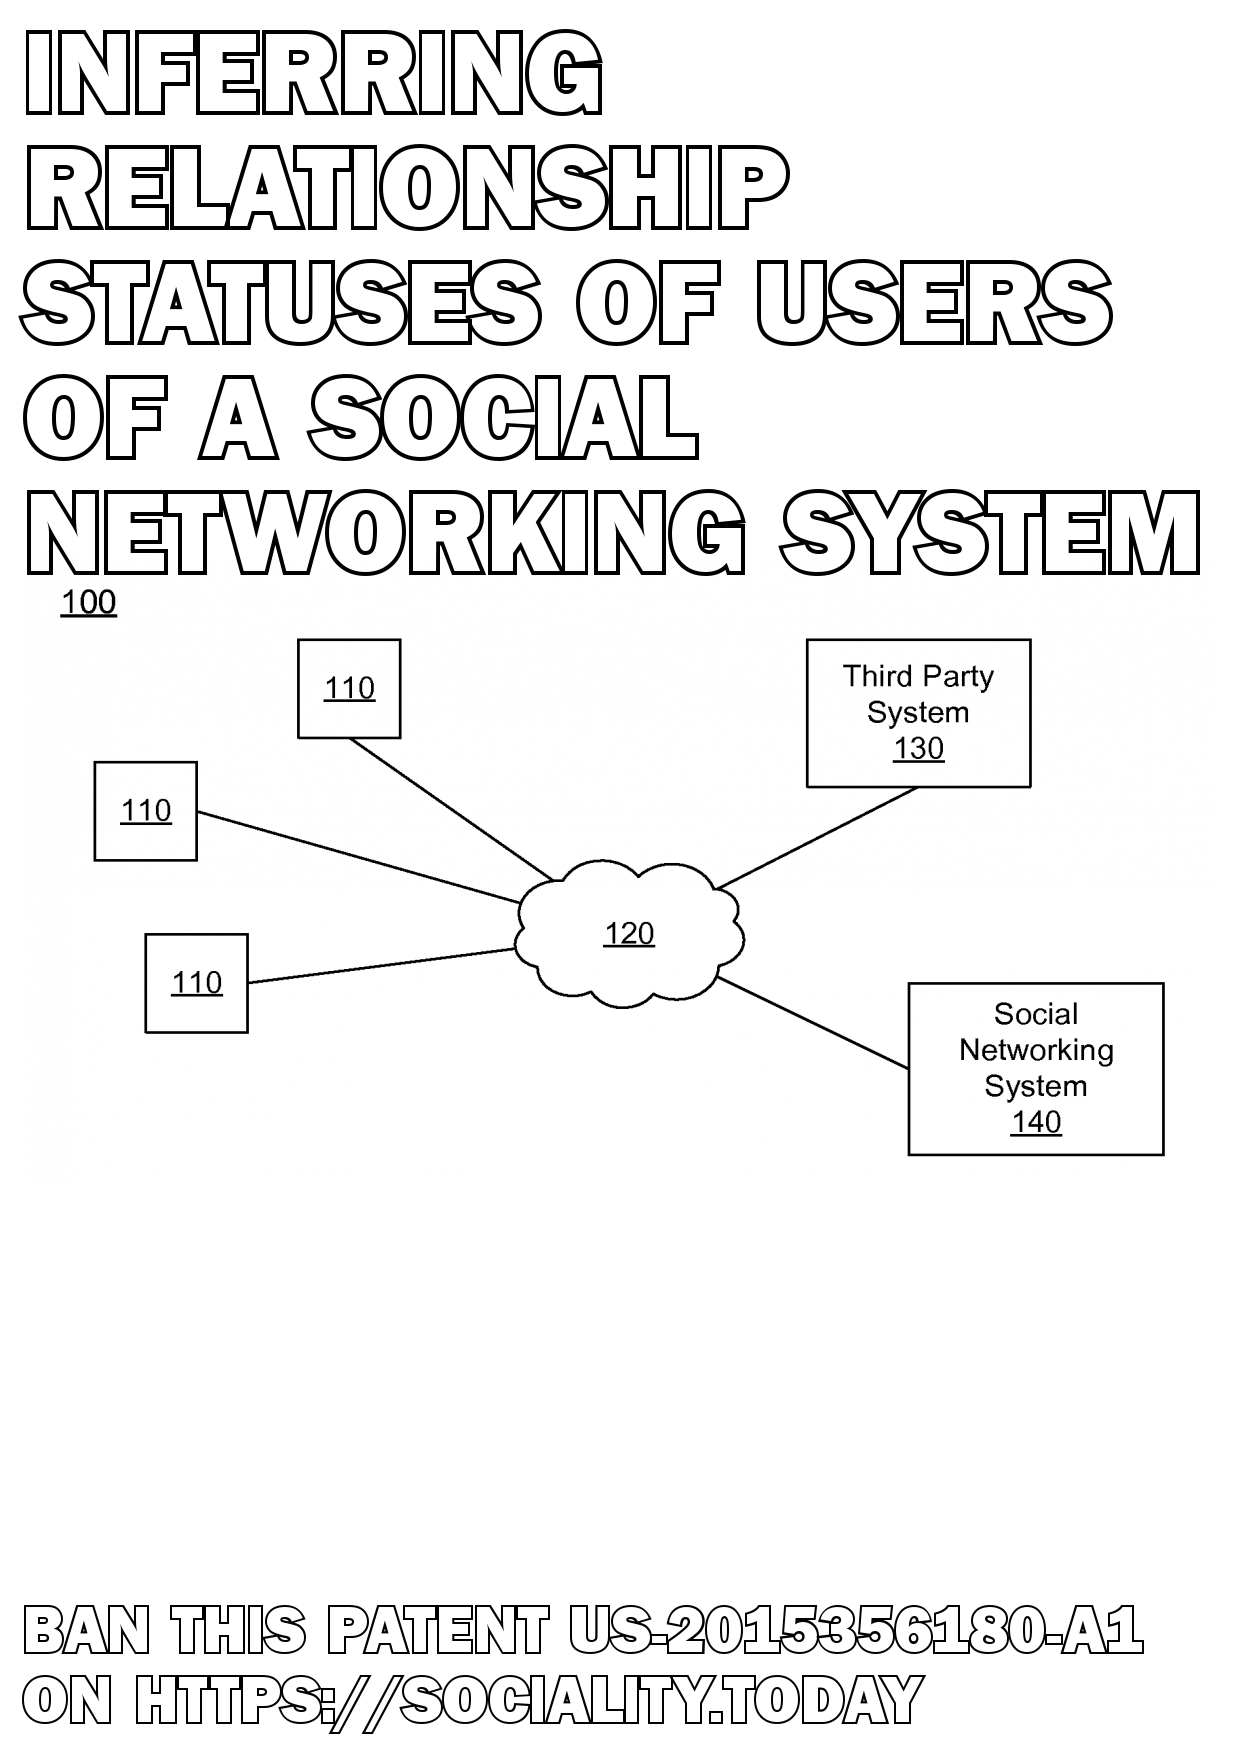 Inferring relationship statuses of users of a social networking system  - US-2015356180-A1